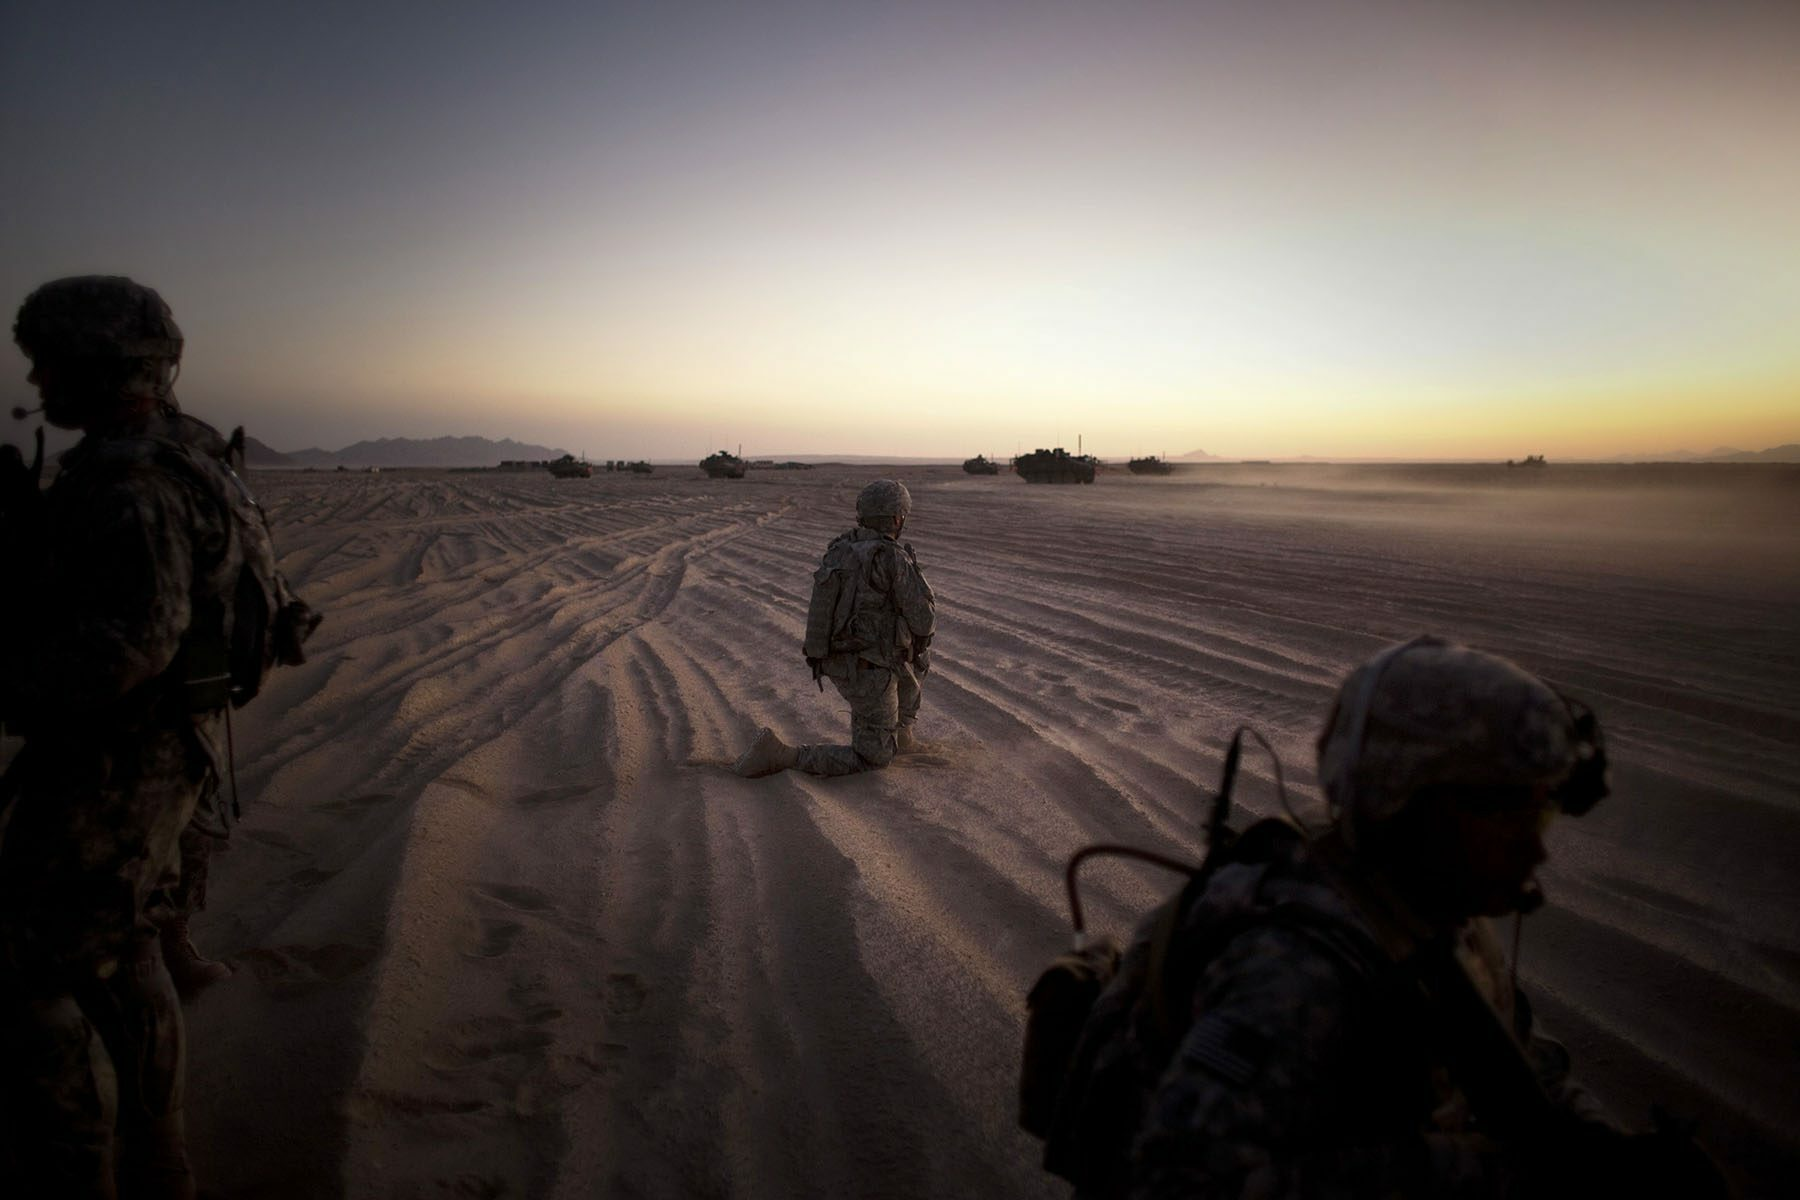 U.S. soldiers kneel in the sand looking at tanks in the distance at sunset.